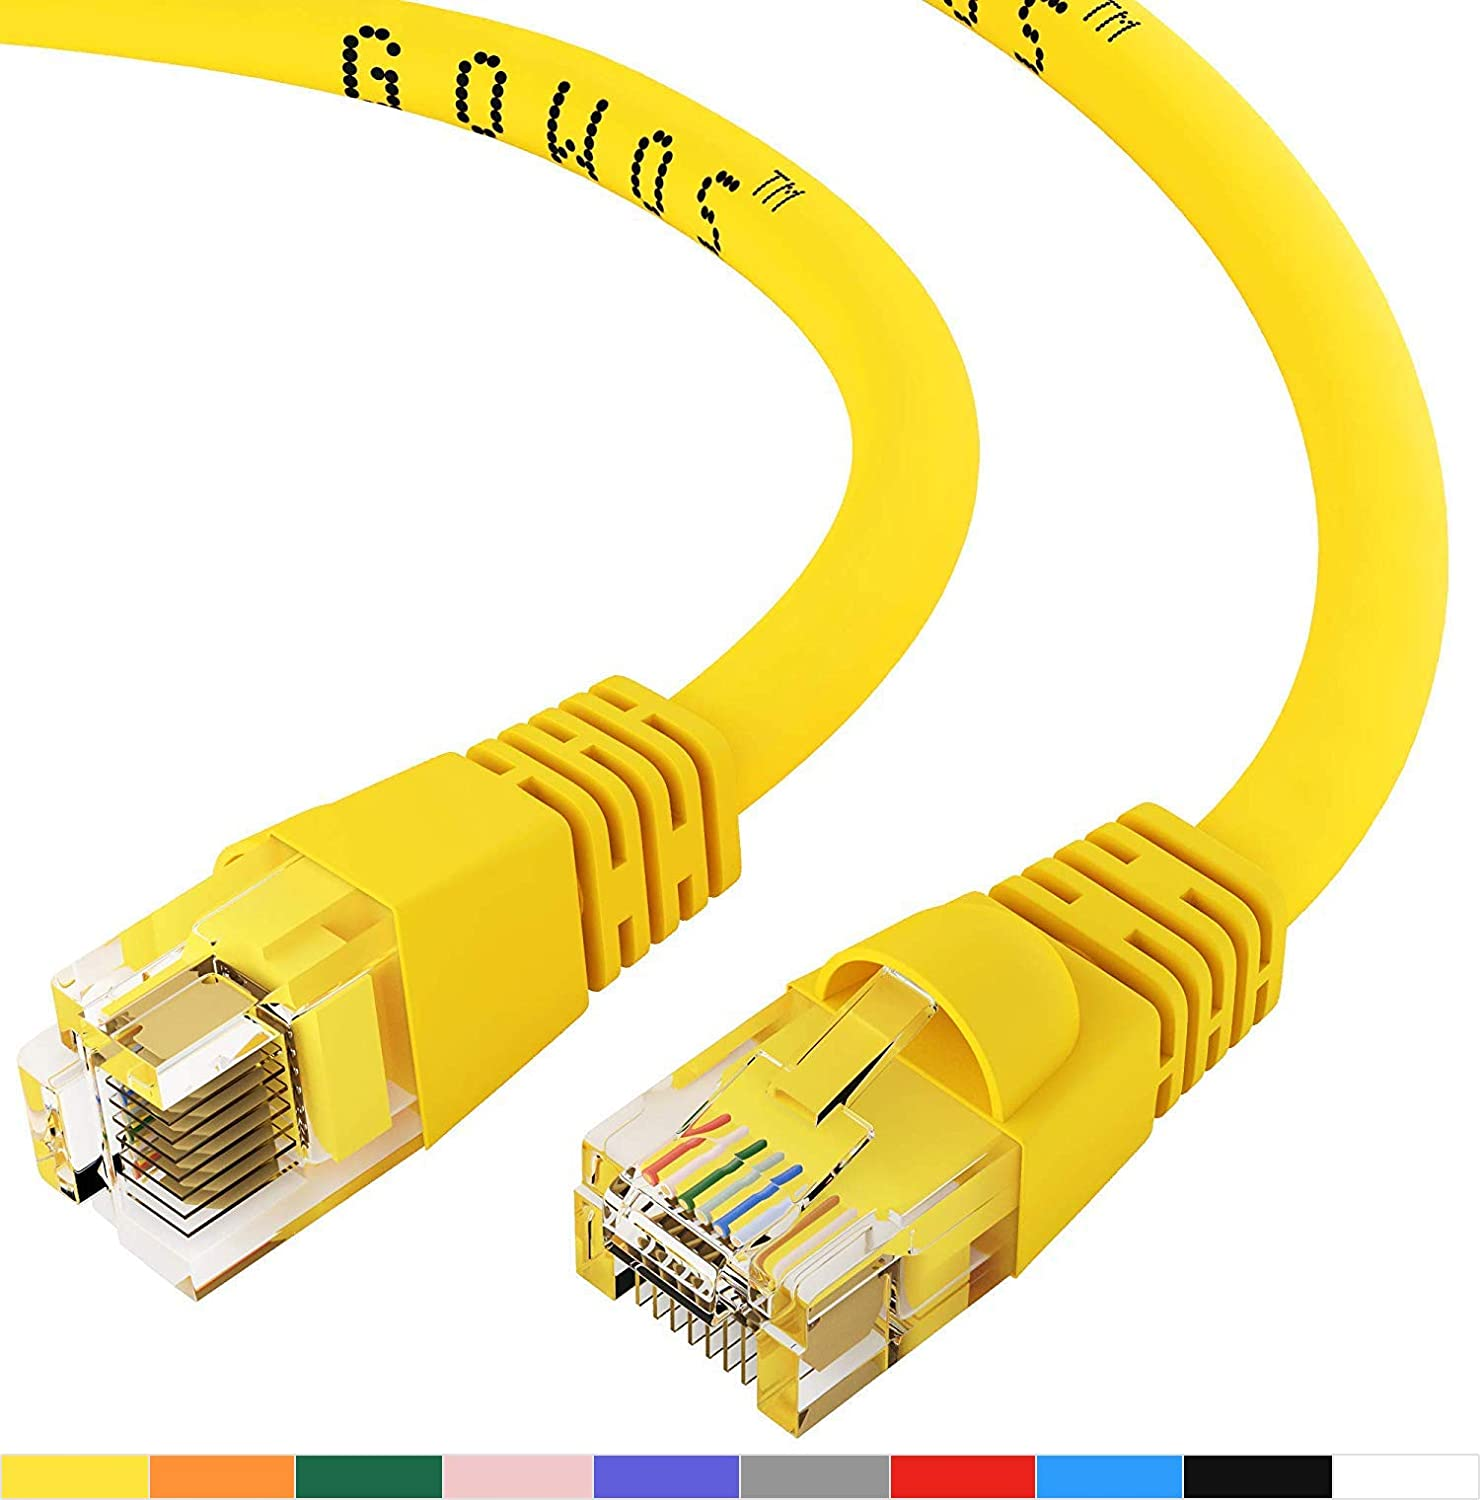 GOWOS Cat6 Ethernet Cable (75 Feet - Yellow) UTP - Computer Network Cable with Snagless Connector - RJ45 10Gbps High Speed LAN Internet Patch Cord - Available in 28 Lengths and 10 Colors